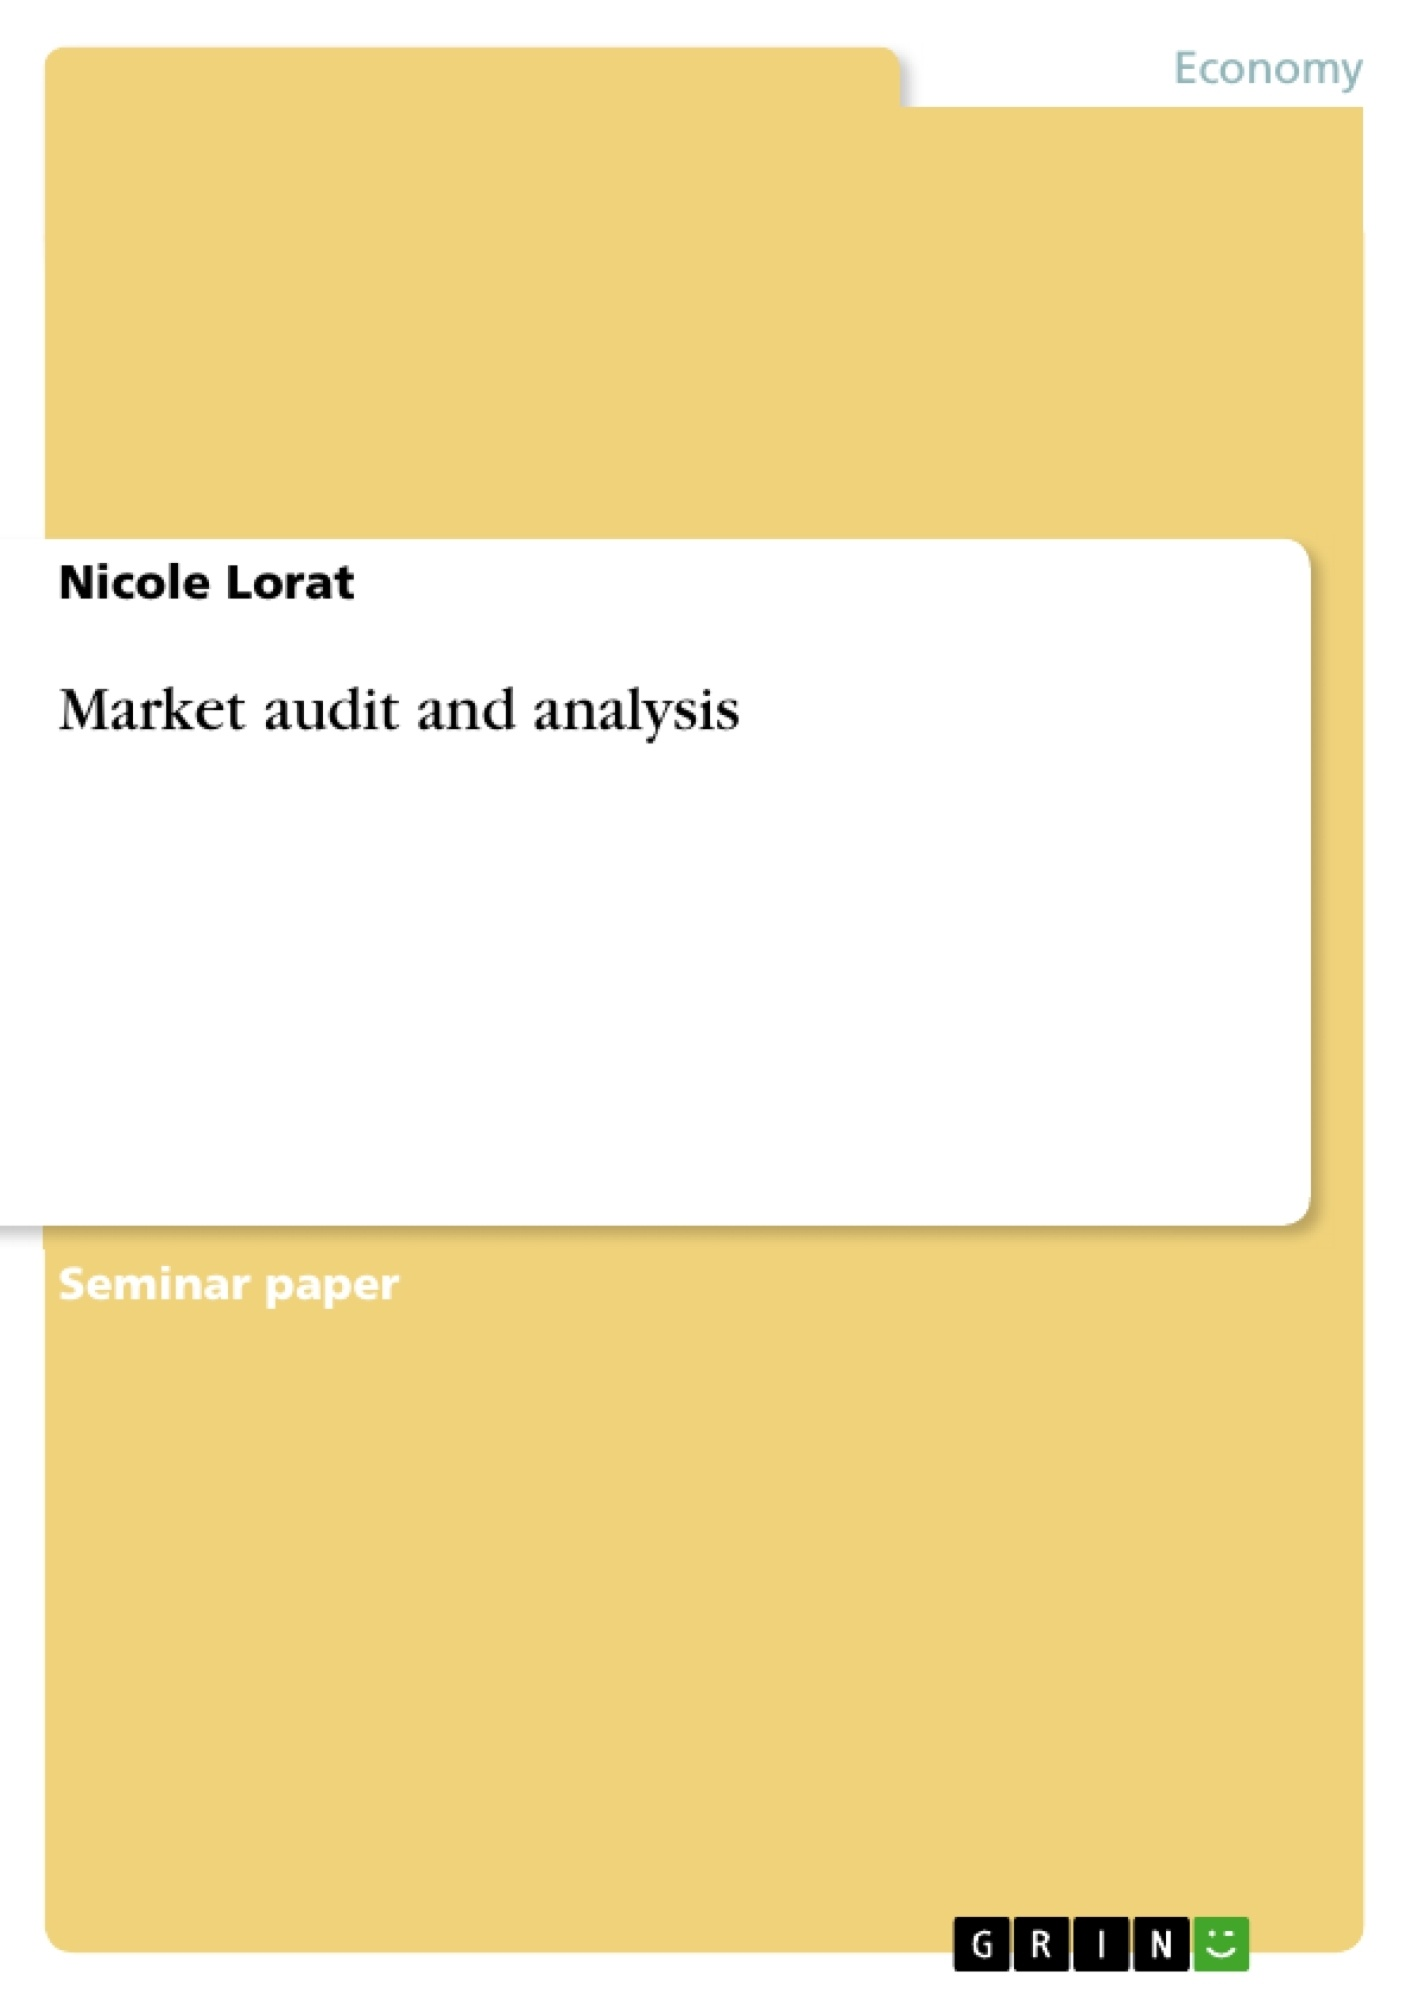 marketing audit term paper